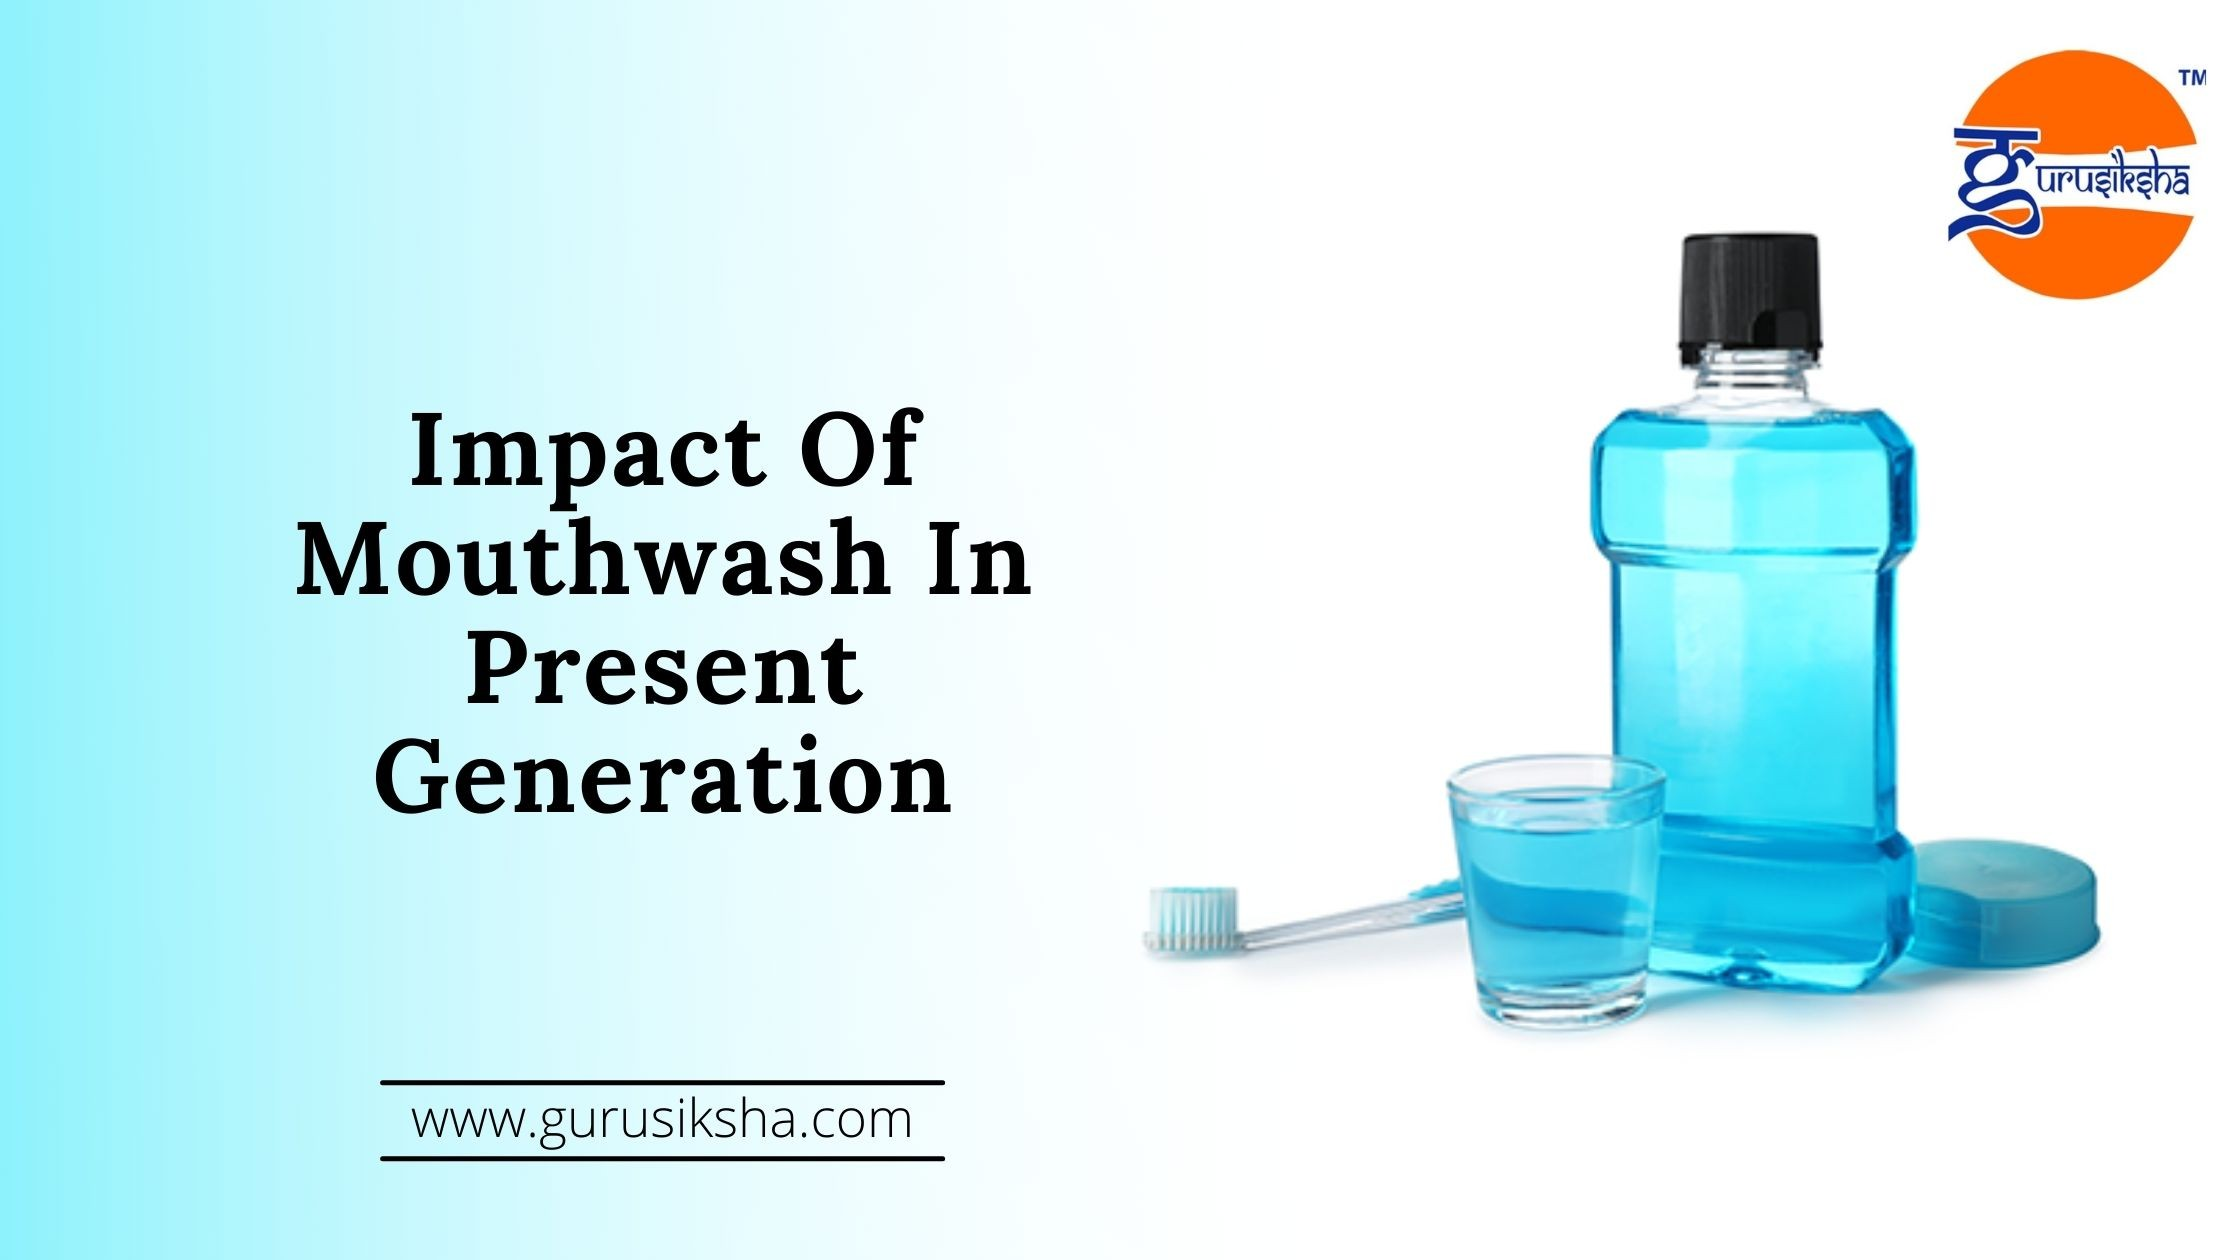 Impact Of Mouthwash In Present Generation